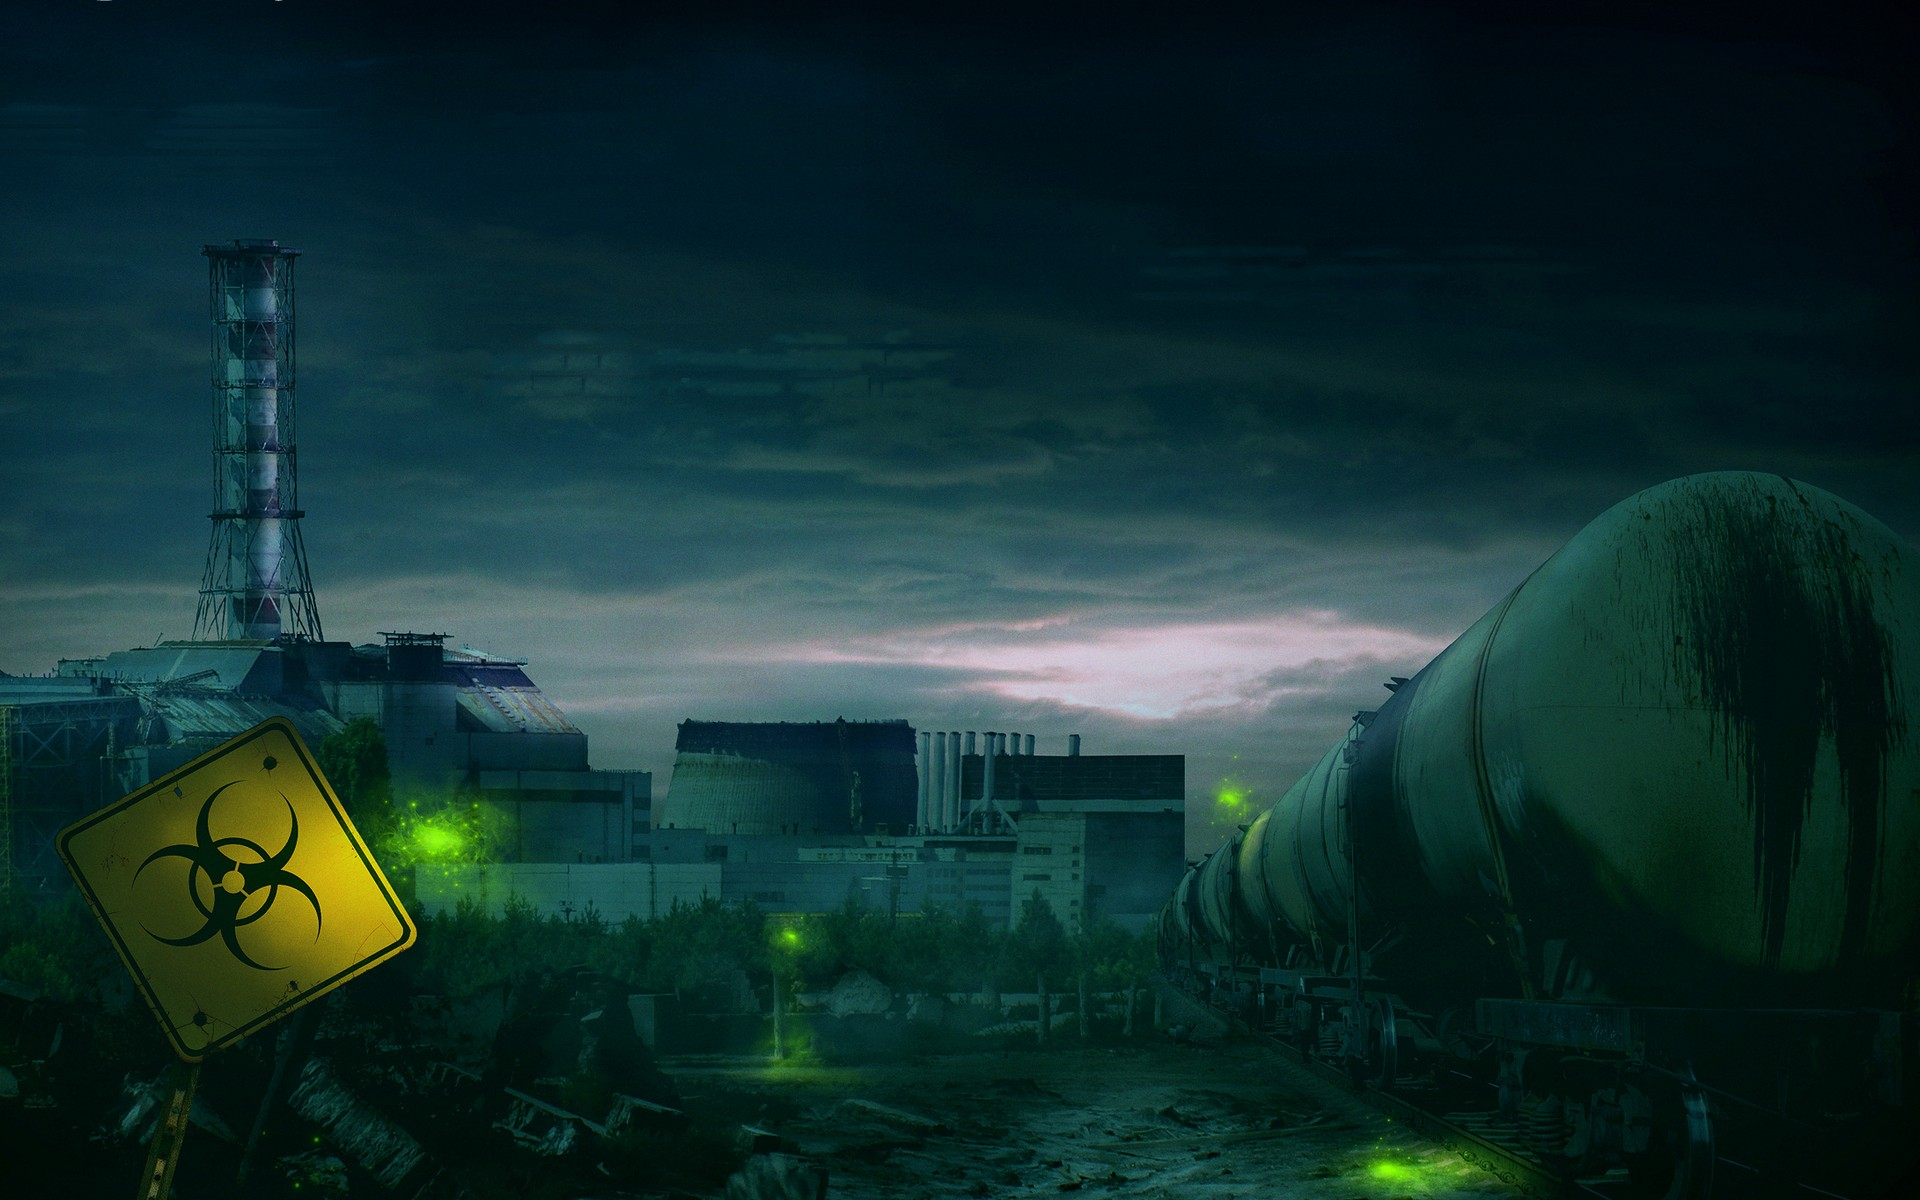 Nuclear chernobyl post apocalyptic wallpaper | 1920x1200 ...